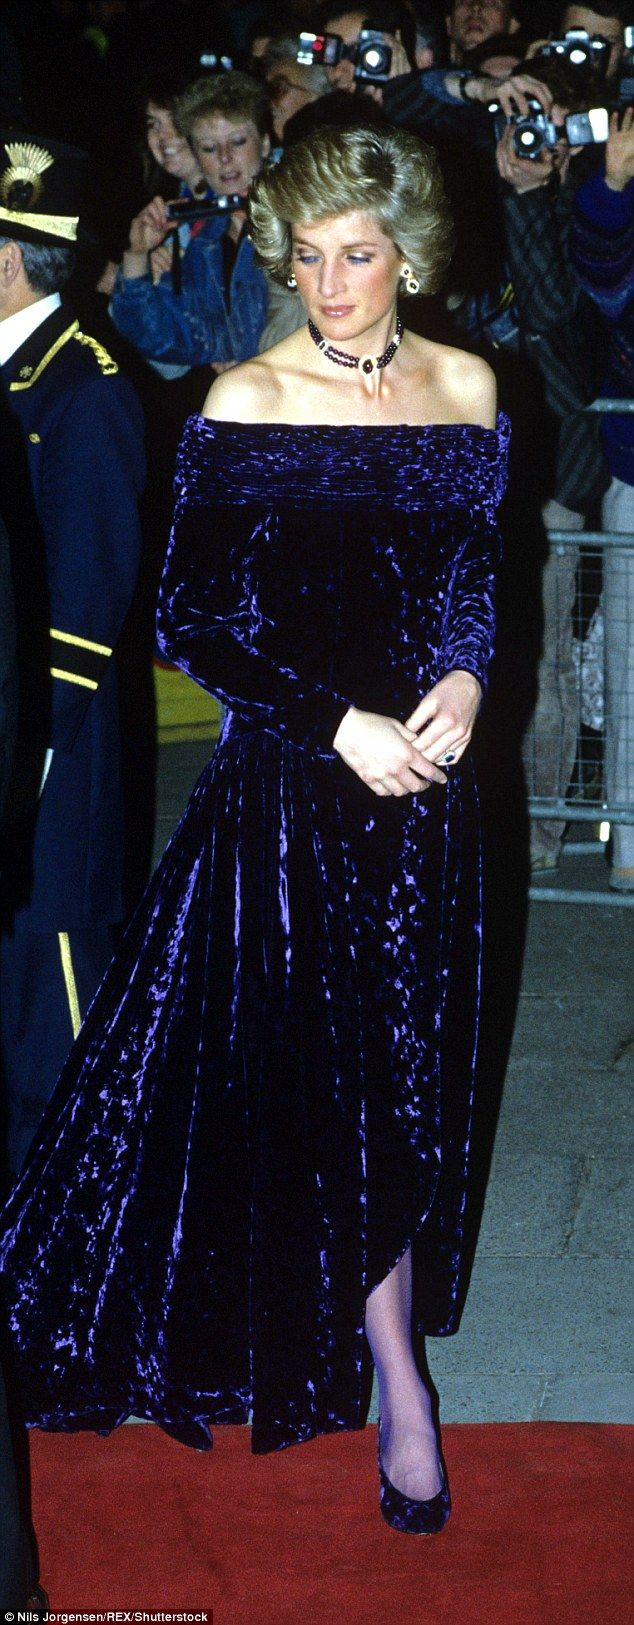 Three rare gowns from Princess Diana's wardrobe have been sold at auction in London, including a purple velvet Bruce Oldfield dress she wore in Portugal in 1987